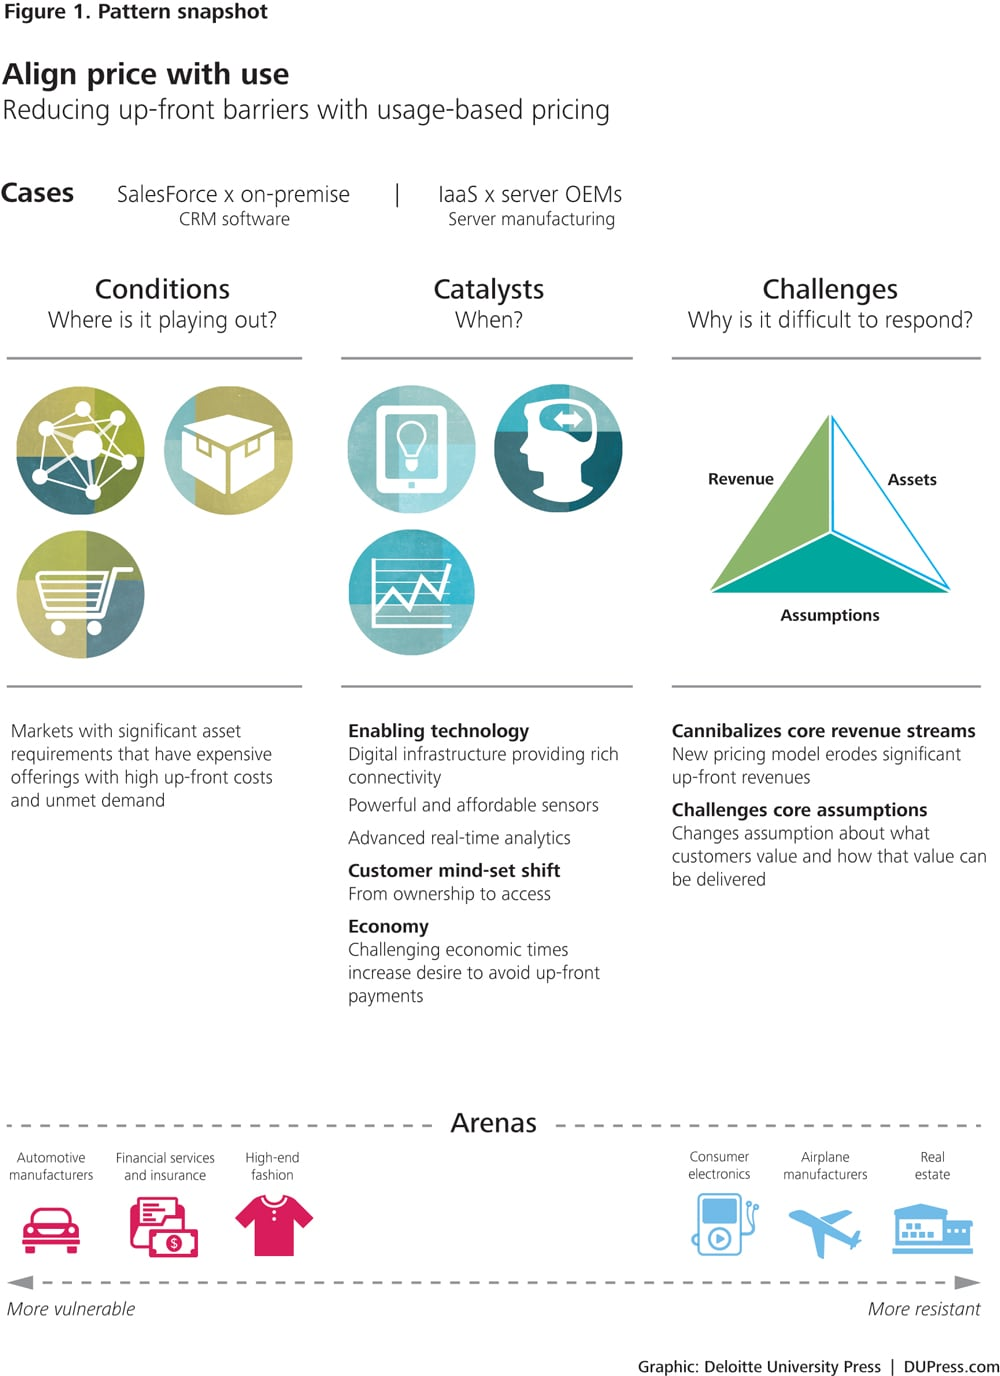 disruptive strategy usage based pricing deloitte insightsup_3058_align price with use_fig 1